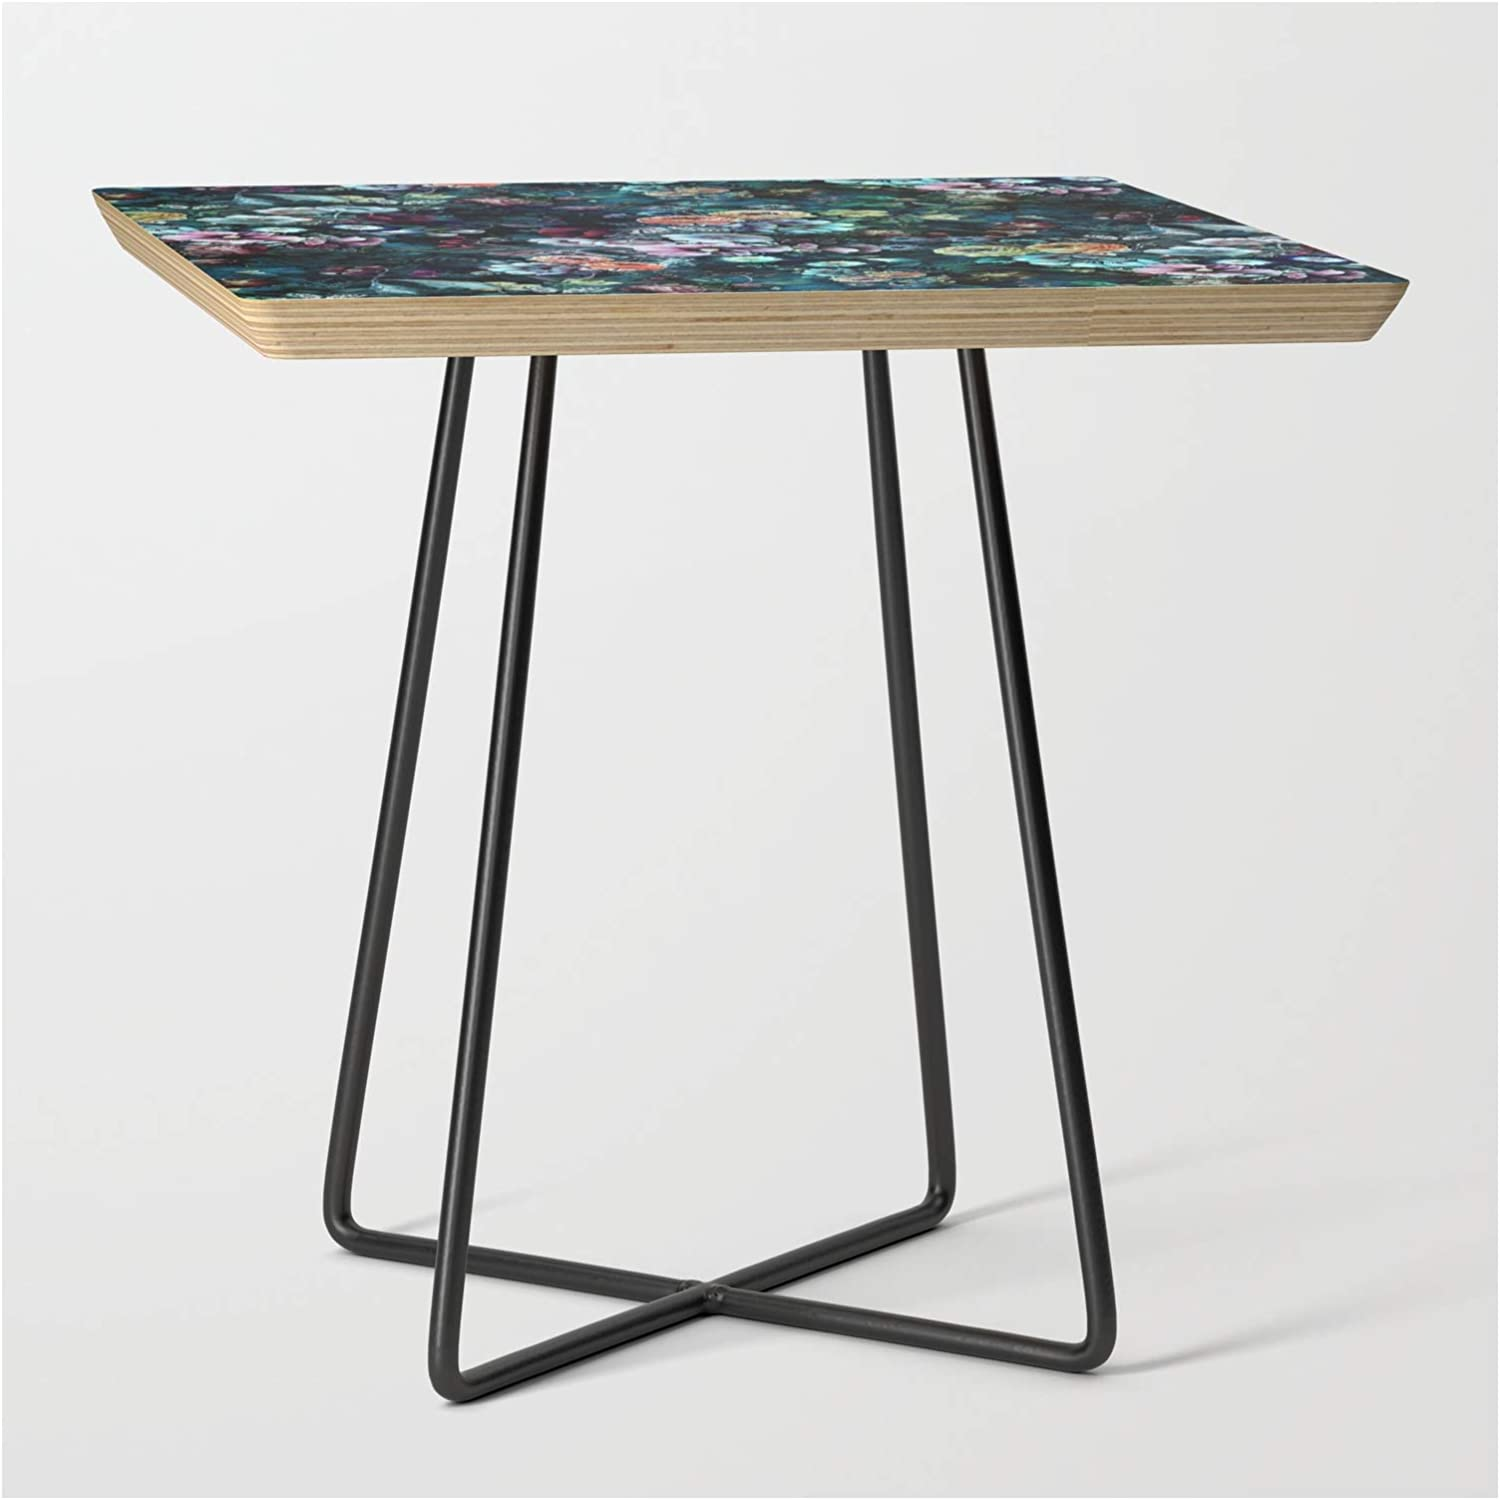 Amazon.com: Night Garden by Riza Peker on Side Table - Black